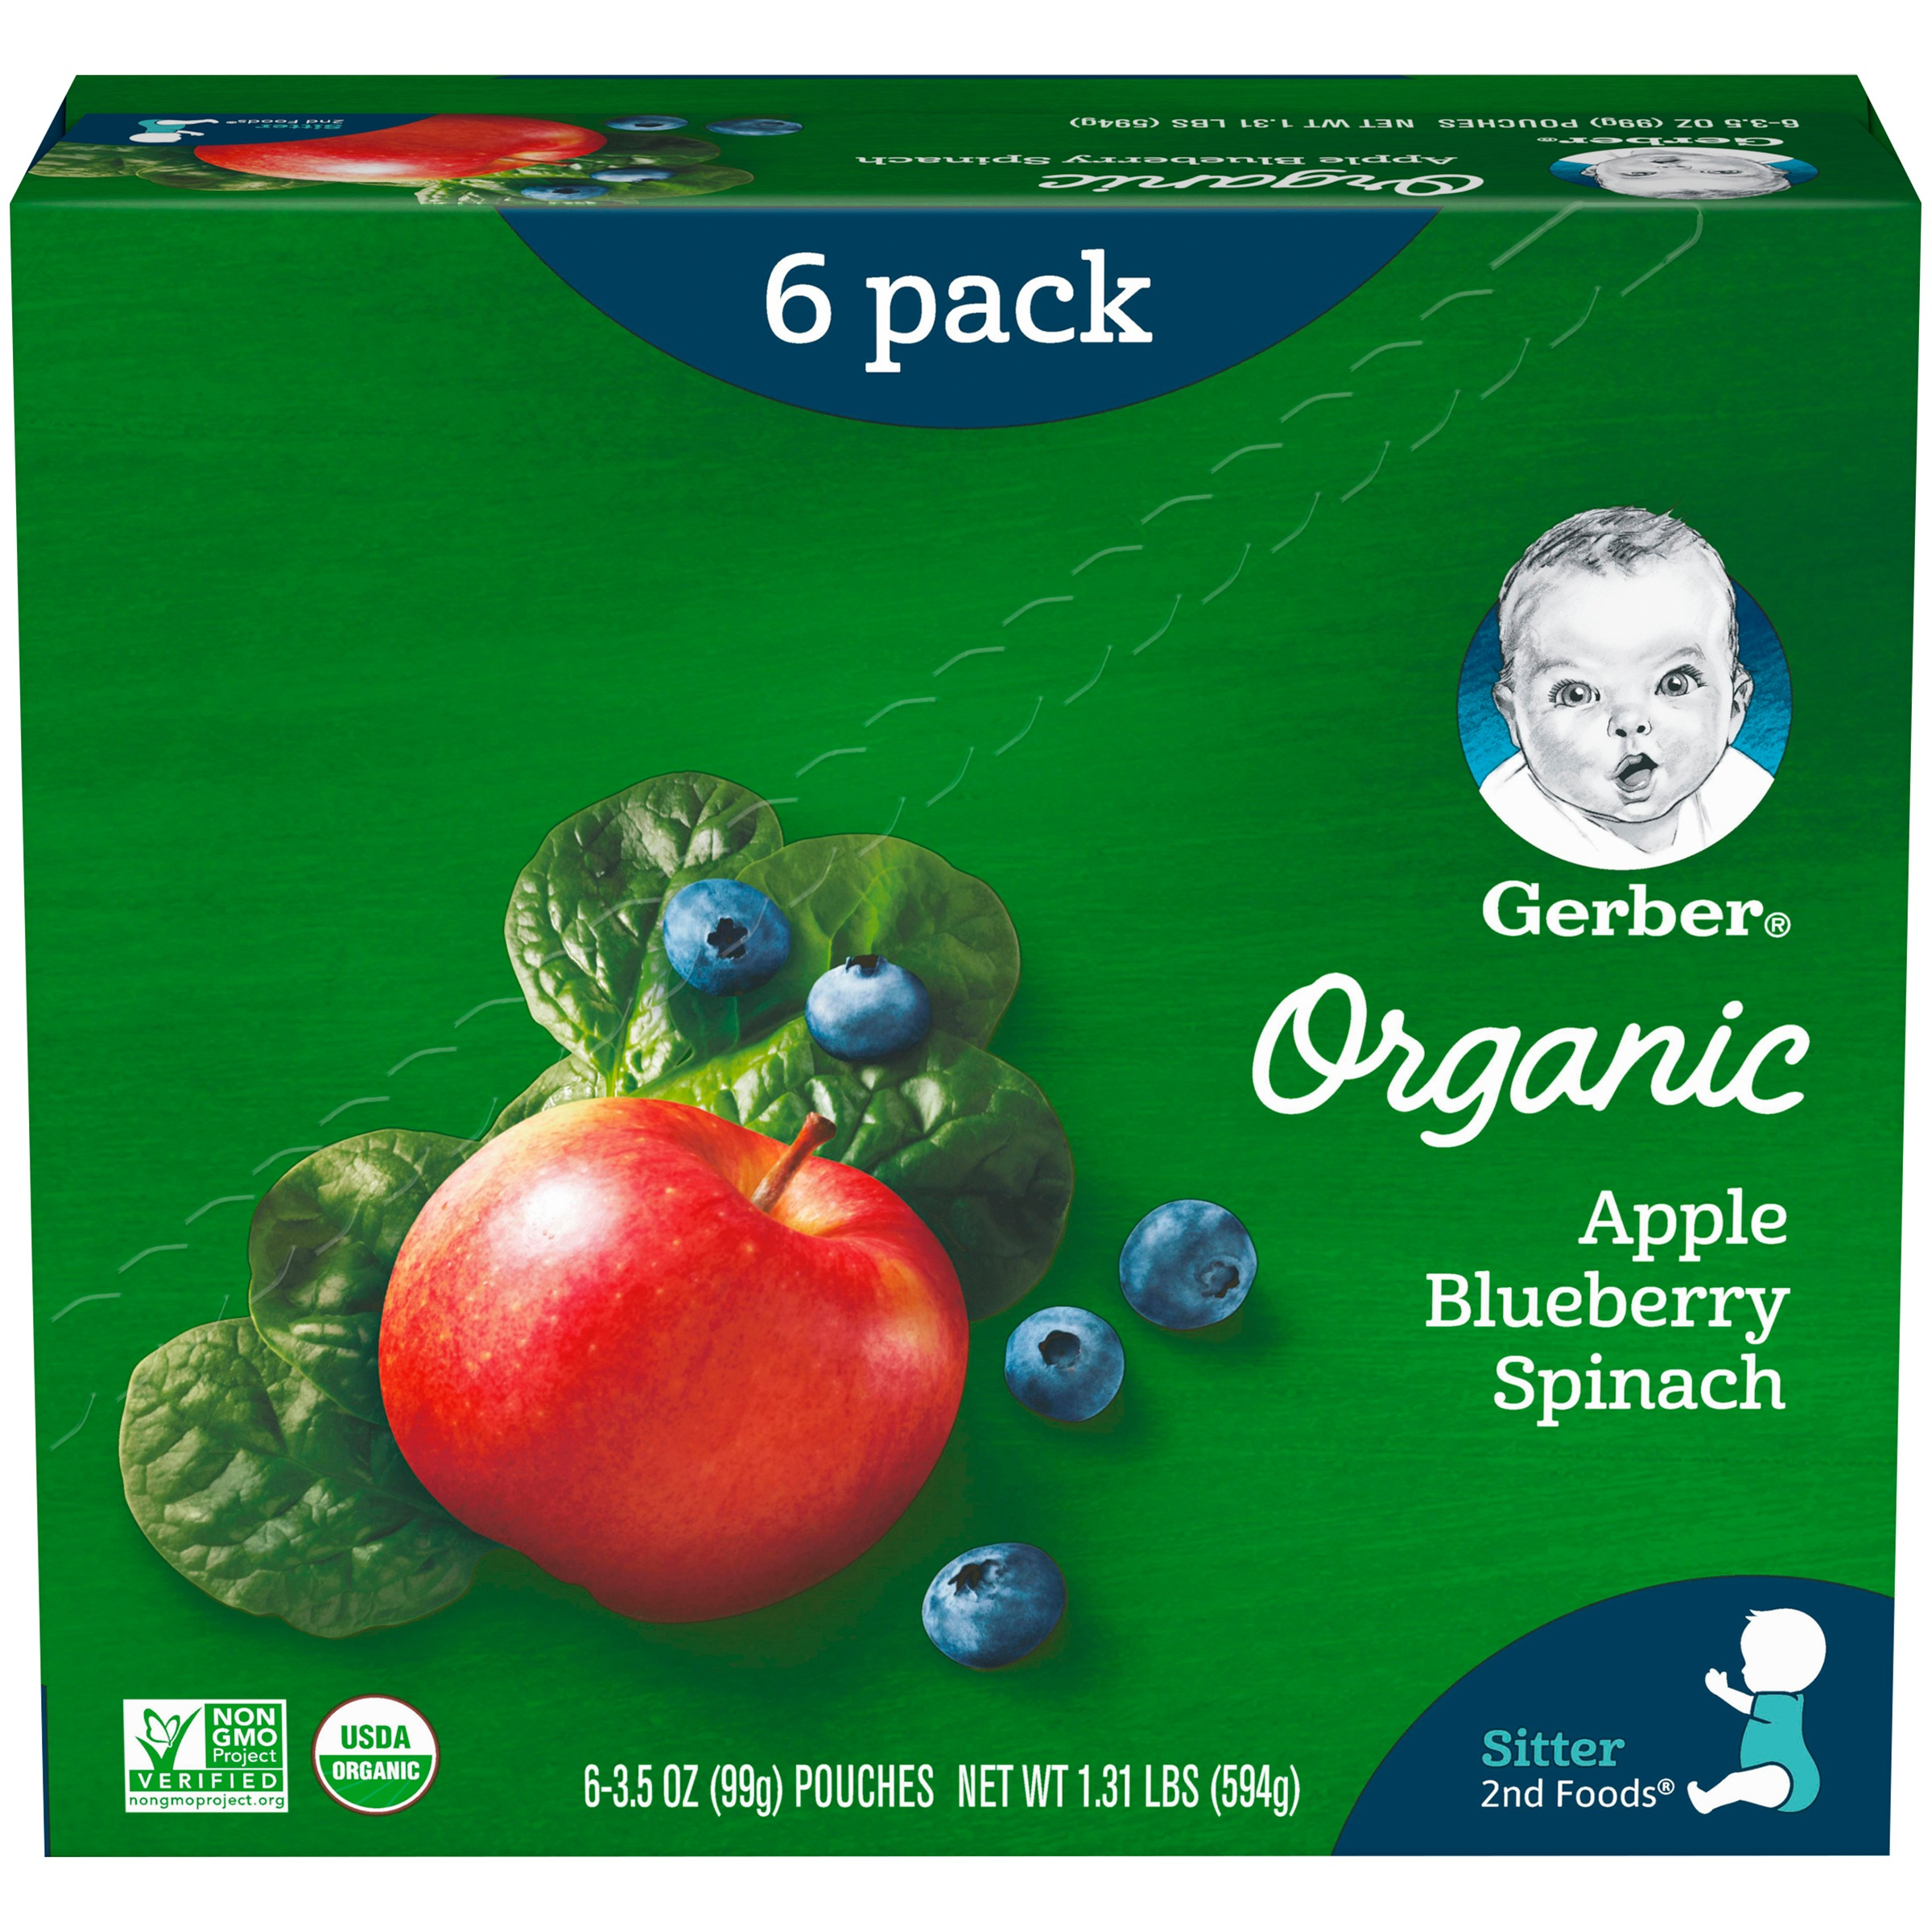 Gerber 2nd Foods Organic Baby Food, Apples, Blueberries & Spinach, 3.5 oz. Pouch (Pack of 6)